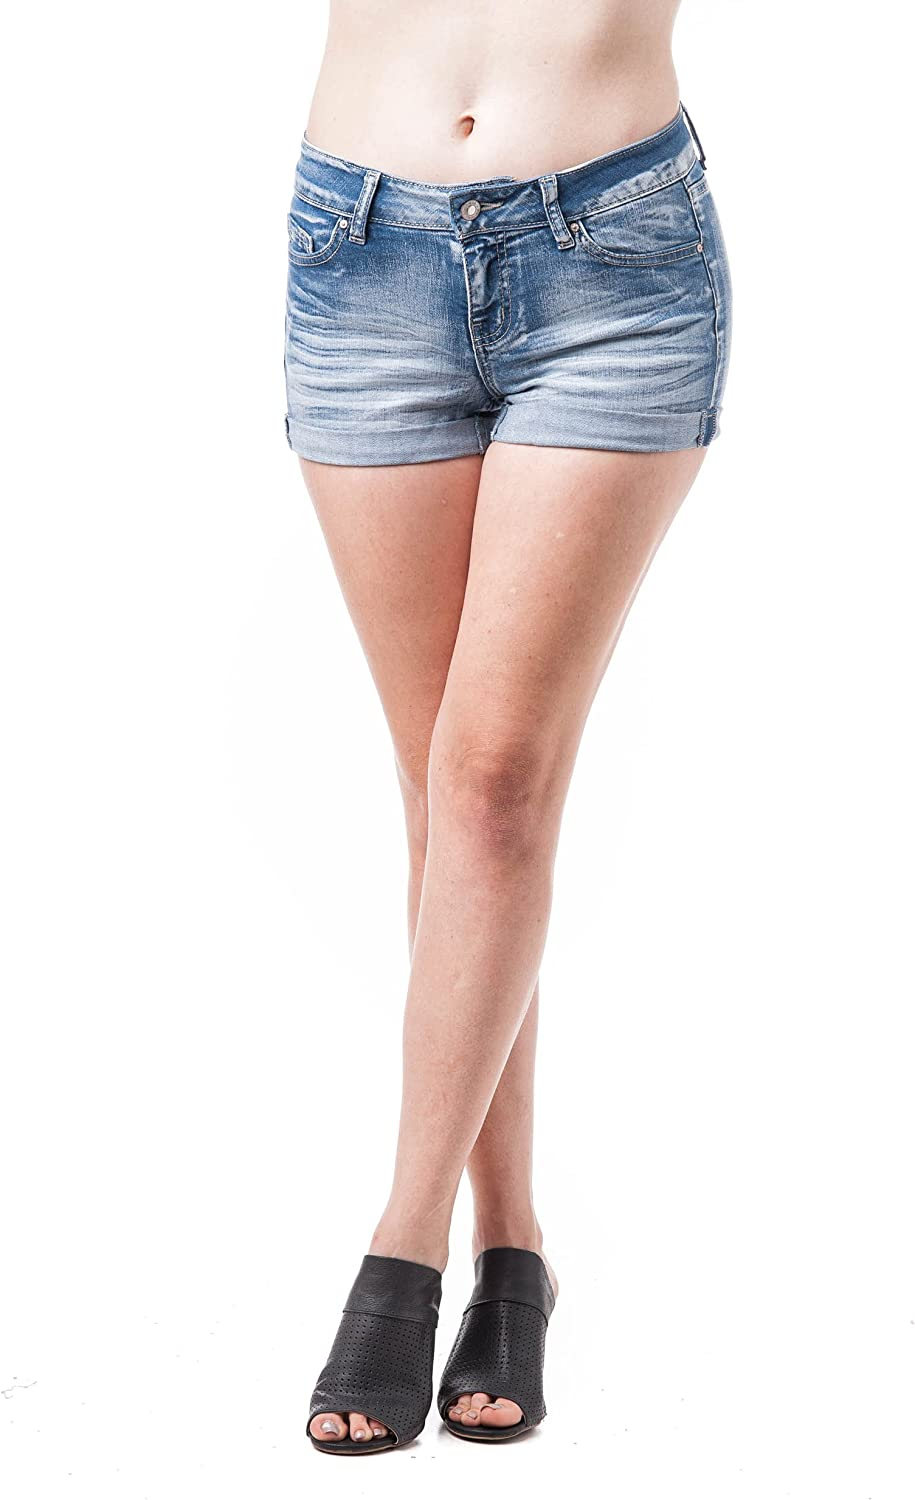 Khanomak Acid Wash Denim Cuffed Plain Short Shorts